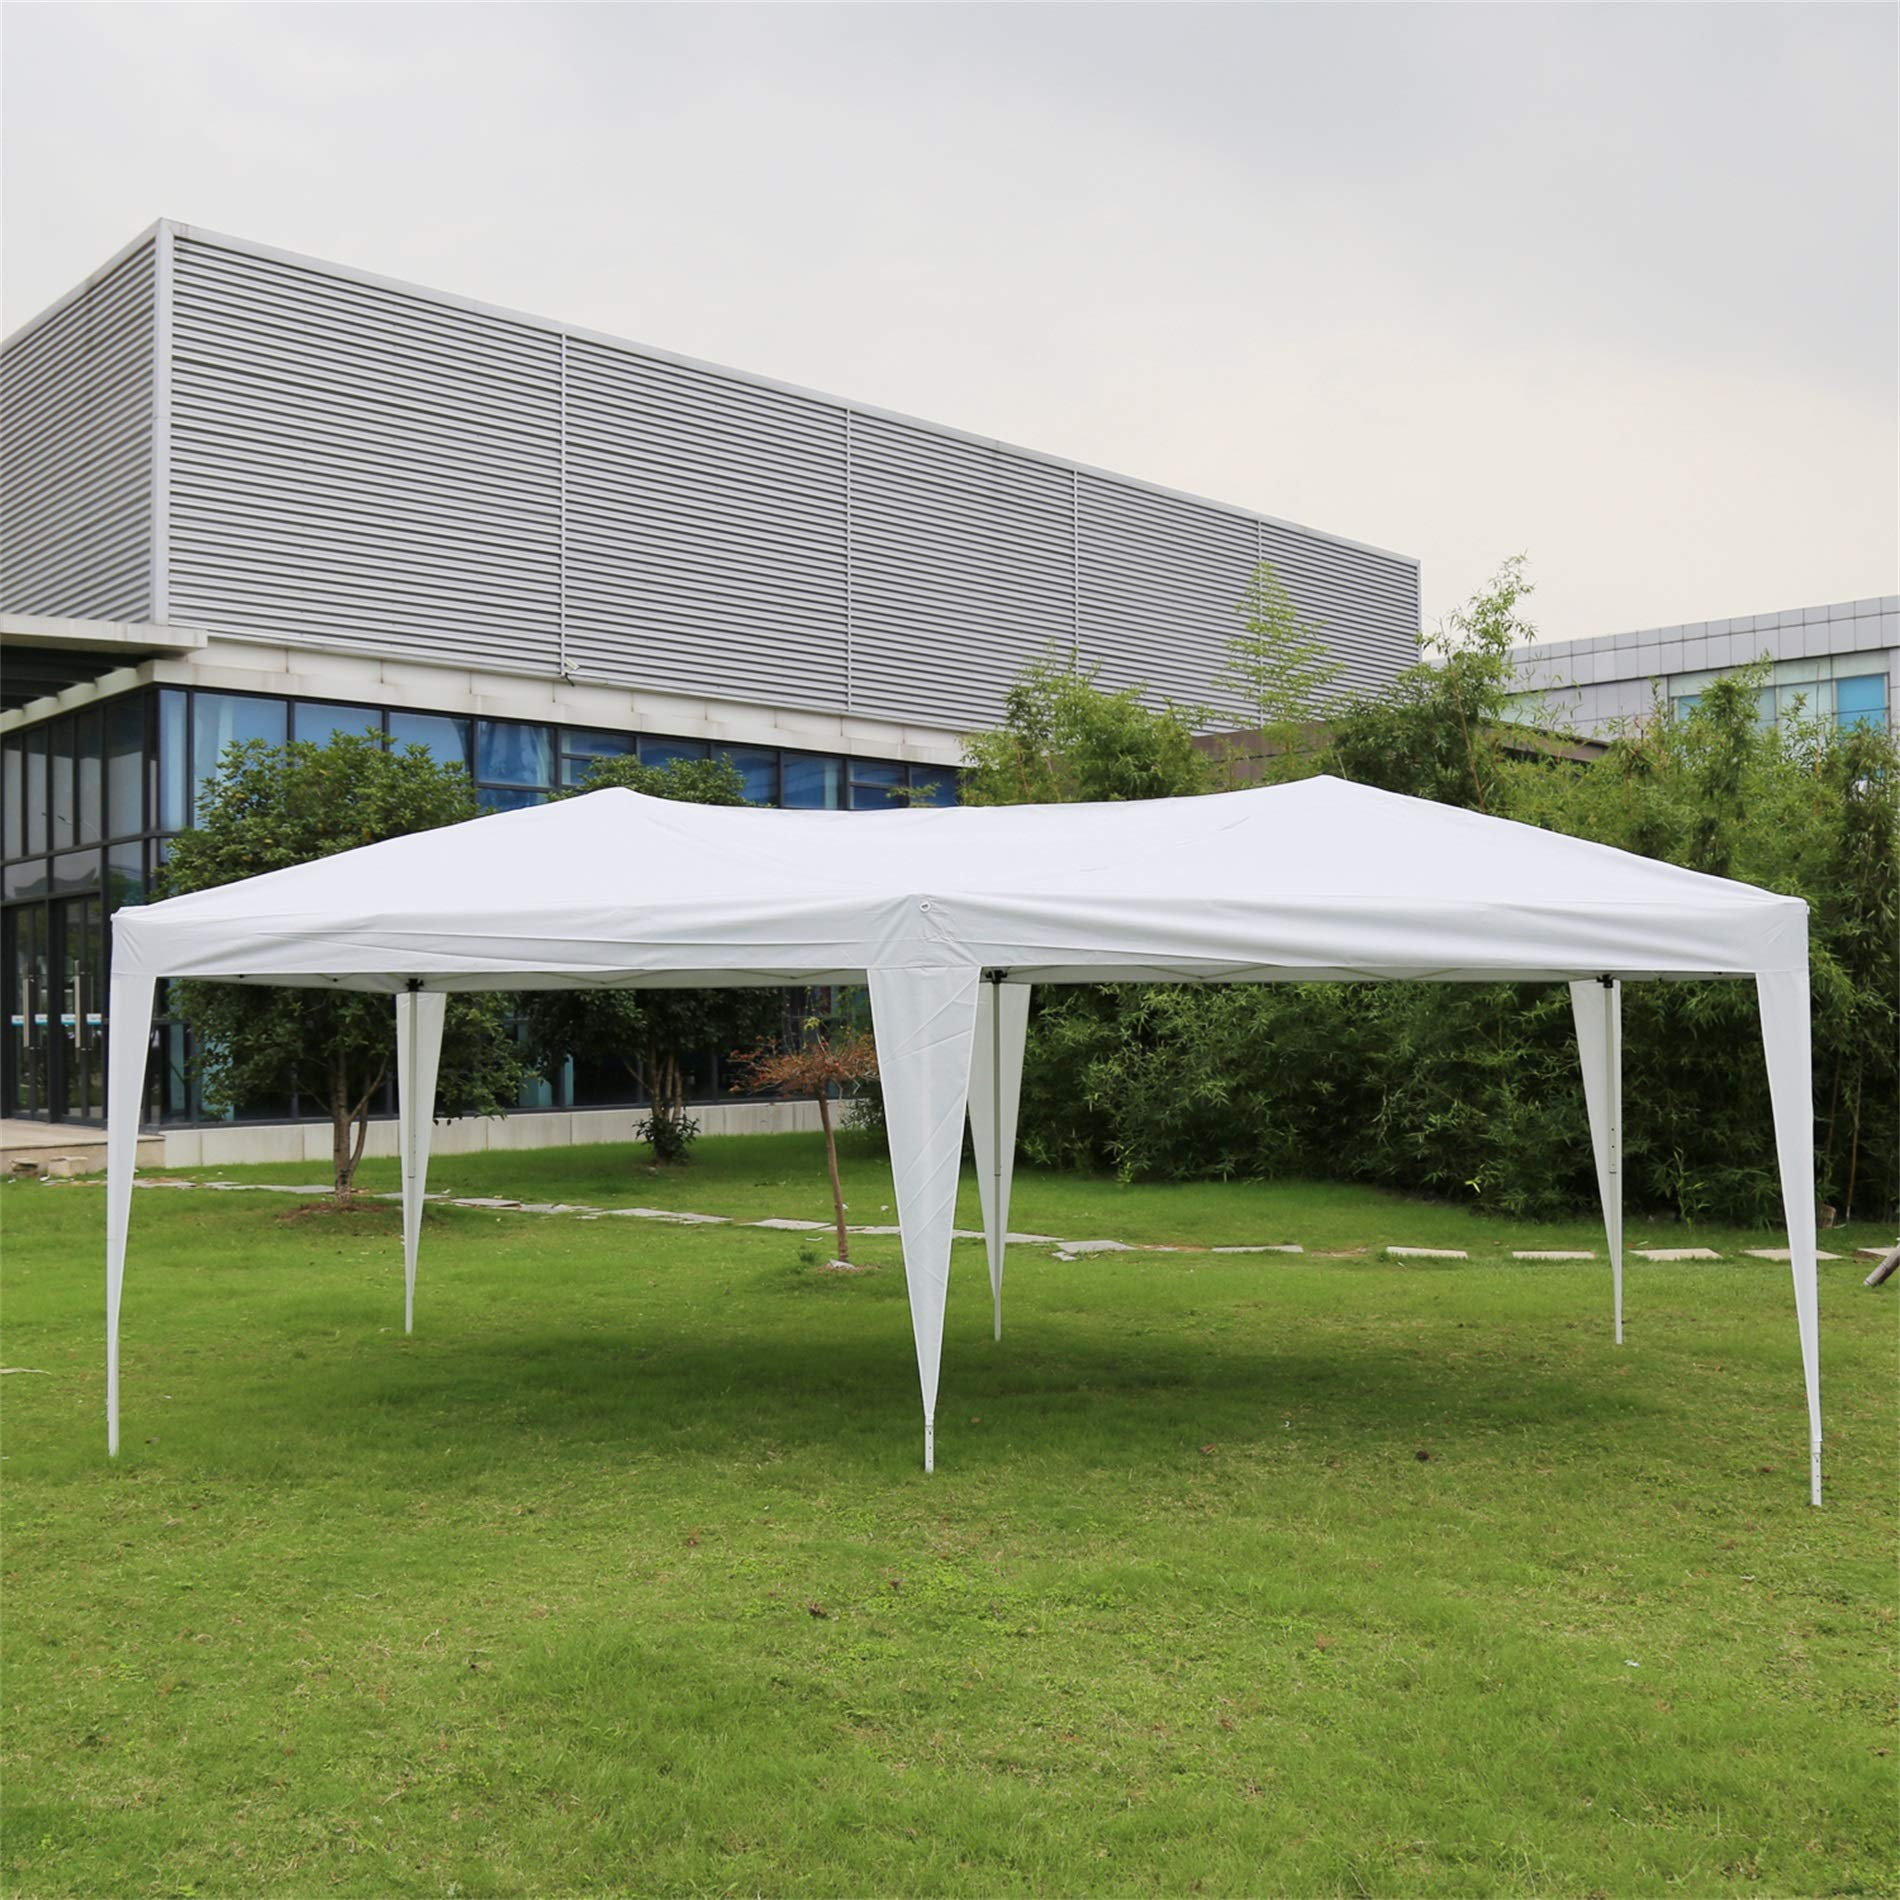 Kinbor 10' x 20' Outdoor White Waterproof Gazebo Canopy Tent for Party Wedding Events Beach BBQ